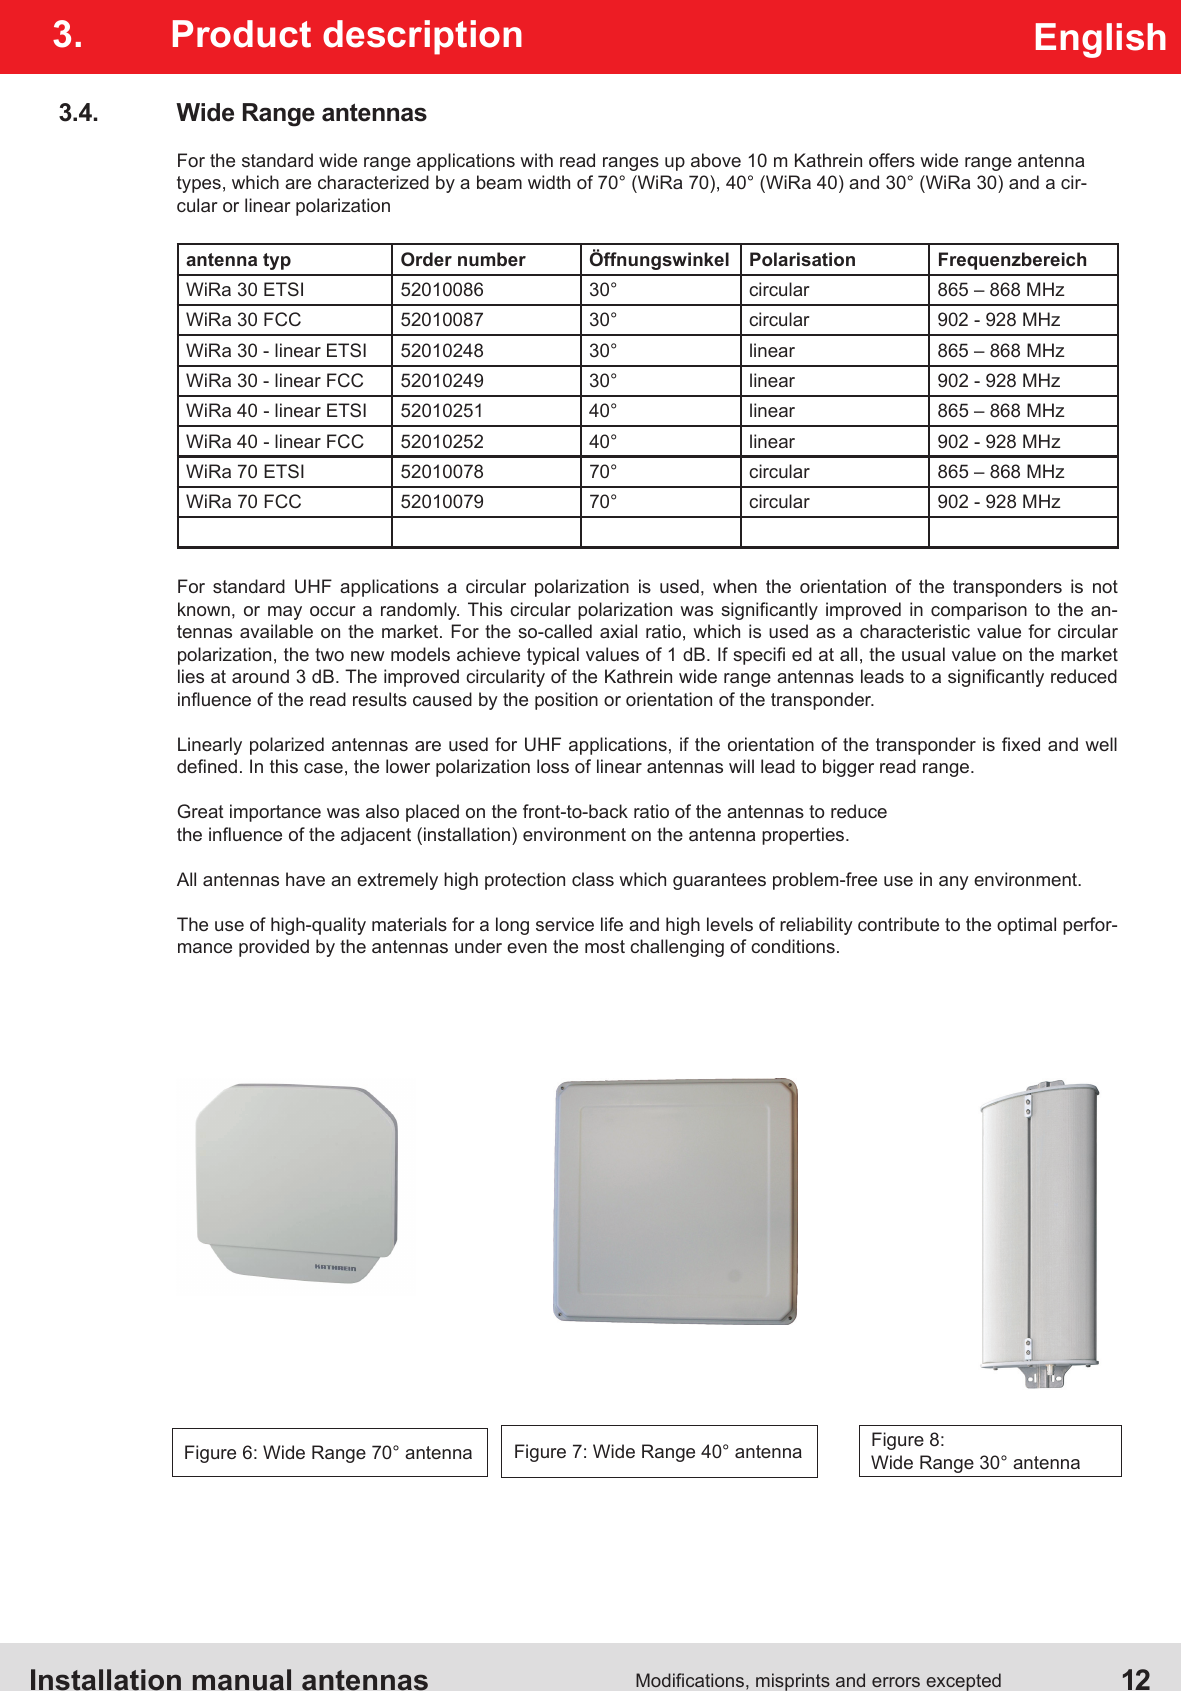 Installation manual antennas  12Modications, misprints and errors exceptedEnglish3.  Product description3.4.  Wide Range antennasFor the standard wide range applications with read ranges up above 10 m Kathrein offers wide range antenna types, which are characterized by a beam width of 70° (WiRa 70), 40° (WiRa 40) and 30° (WiRa 30) and a cir-cular or linear polarizationantenna typ Order number Öffnungswinkel Polarisation FrequenzbereichWiRa 30 ETSI 52010086 30° circular 865 – 868 MHzWiRa 30 FCC 52010087 30° circular 902 - 928 MHzWiRa 30 - linear ETSI 52010248 30° linear 865 – 868 MHzWiRa 30 - linear FCC 52010249 30° linear 902 - 928 MHzWiRa 40 - linear ETSI 52010251 40° linear 865 – 868 MHzWiRa 40 - linear FCC 52010252 40° linear 902 - 928 MHzWiRa 70 ETSI 52010078 70° circular 865 – 868 MHzWiRa 70 FCC 52010079 70° circular 902 - 928 MHzFor standard UHF applications a circular polarization is used, when the orientation of the transponders is not known, or may  occur a randomly. This circular  polarization was  signicantly improved in  comparison to the  an-tennas available on the market. For the so-called axial ratio, which is used as a characteristic value for circular polarization, the two new models achieve typical values of 1 dB. If speci ed at all, the usual value on the market lies at around 3 dB. The improved circularity of the Kathrein wide range antennas leads to a signicantly reduced inuence of the read results caused by the position or orientation of the transponder.Linearly polarized antennas are used for UHF applications, if the orientation of the transponder is xed and well dened. In this case, the lower polarization loss of linear antennas will lead to bigger read range.Great importance was also placed on the front-to-back ratio of the antennas to reduce the inuence of the adjacent (installation) environment on the antenna properties. All antennas have an extremely high protection class which guarantees problem-free use in any environment.The use of high-quality materials for a long service life and high levels of reliability contribute to the optimal perfor-mance provided by the antennas under even the most challenging of conditions.Figure 6: Wide Range 70° antenna Figure 8: Wide Range 30° antennaFigure 7: Wide Range 40° antenna